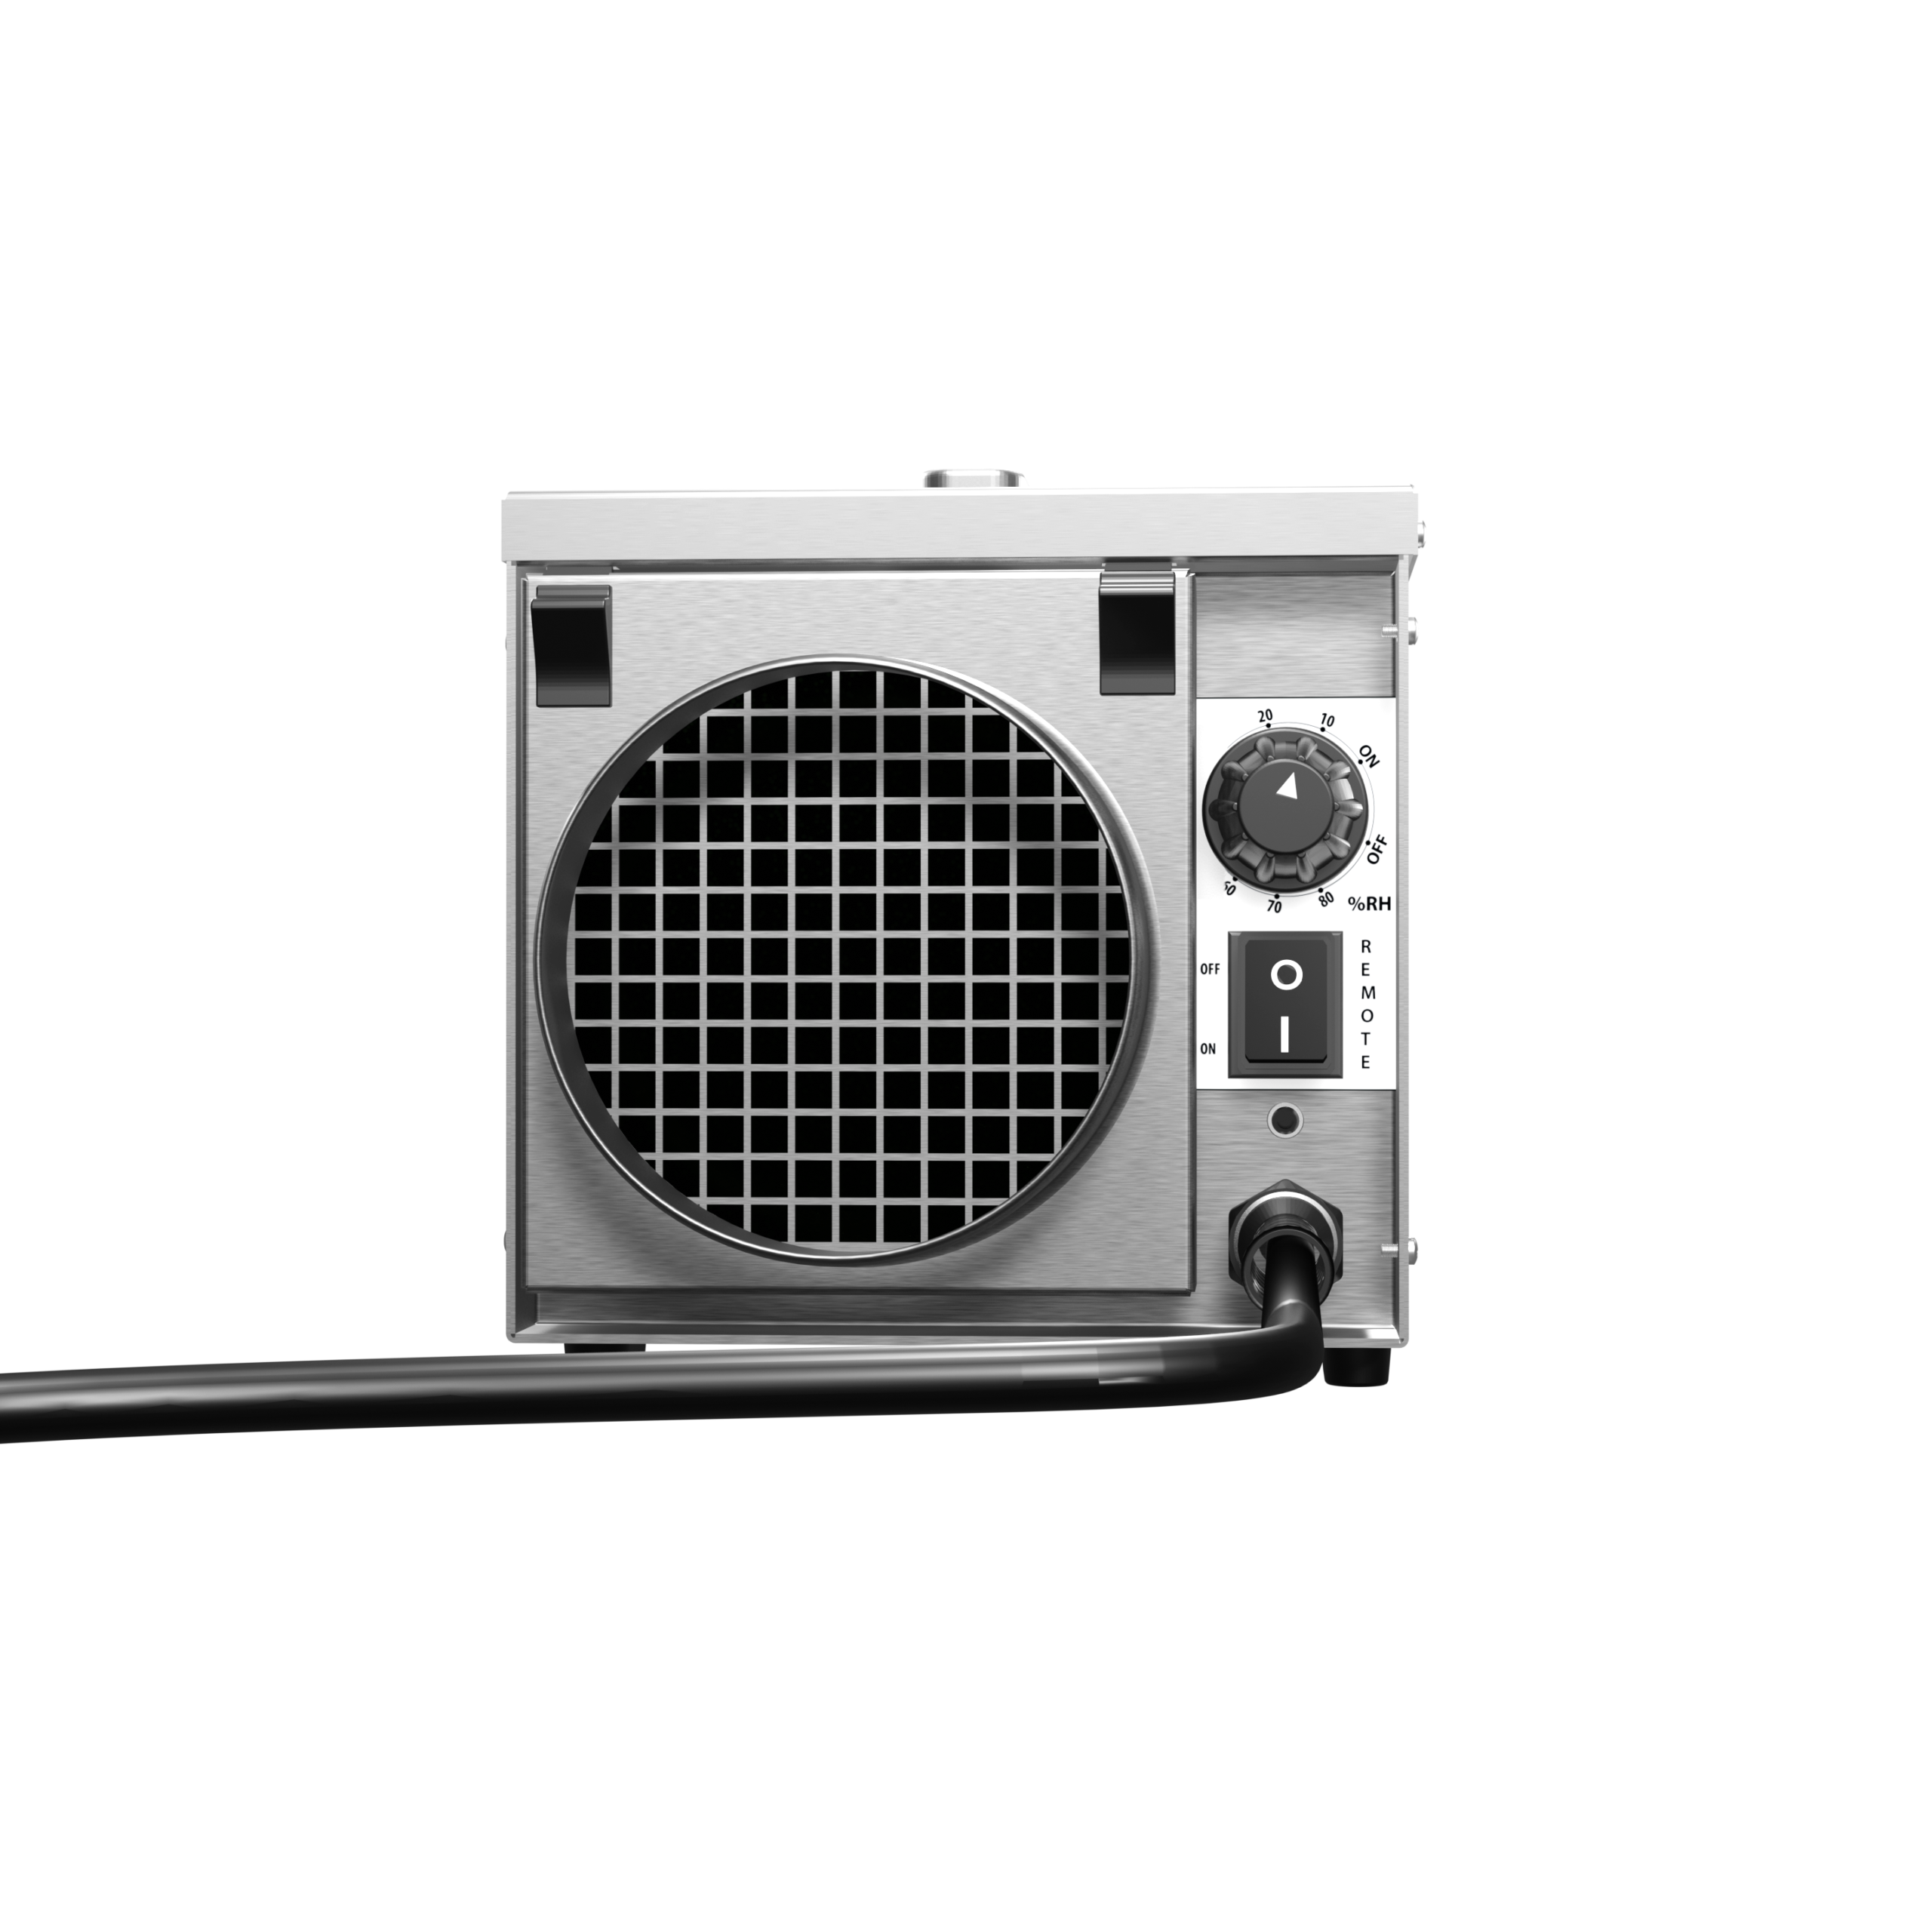 epd50 dh1200 front dehumidifiers by Ecor Pro